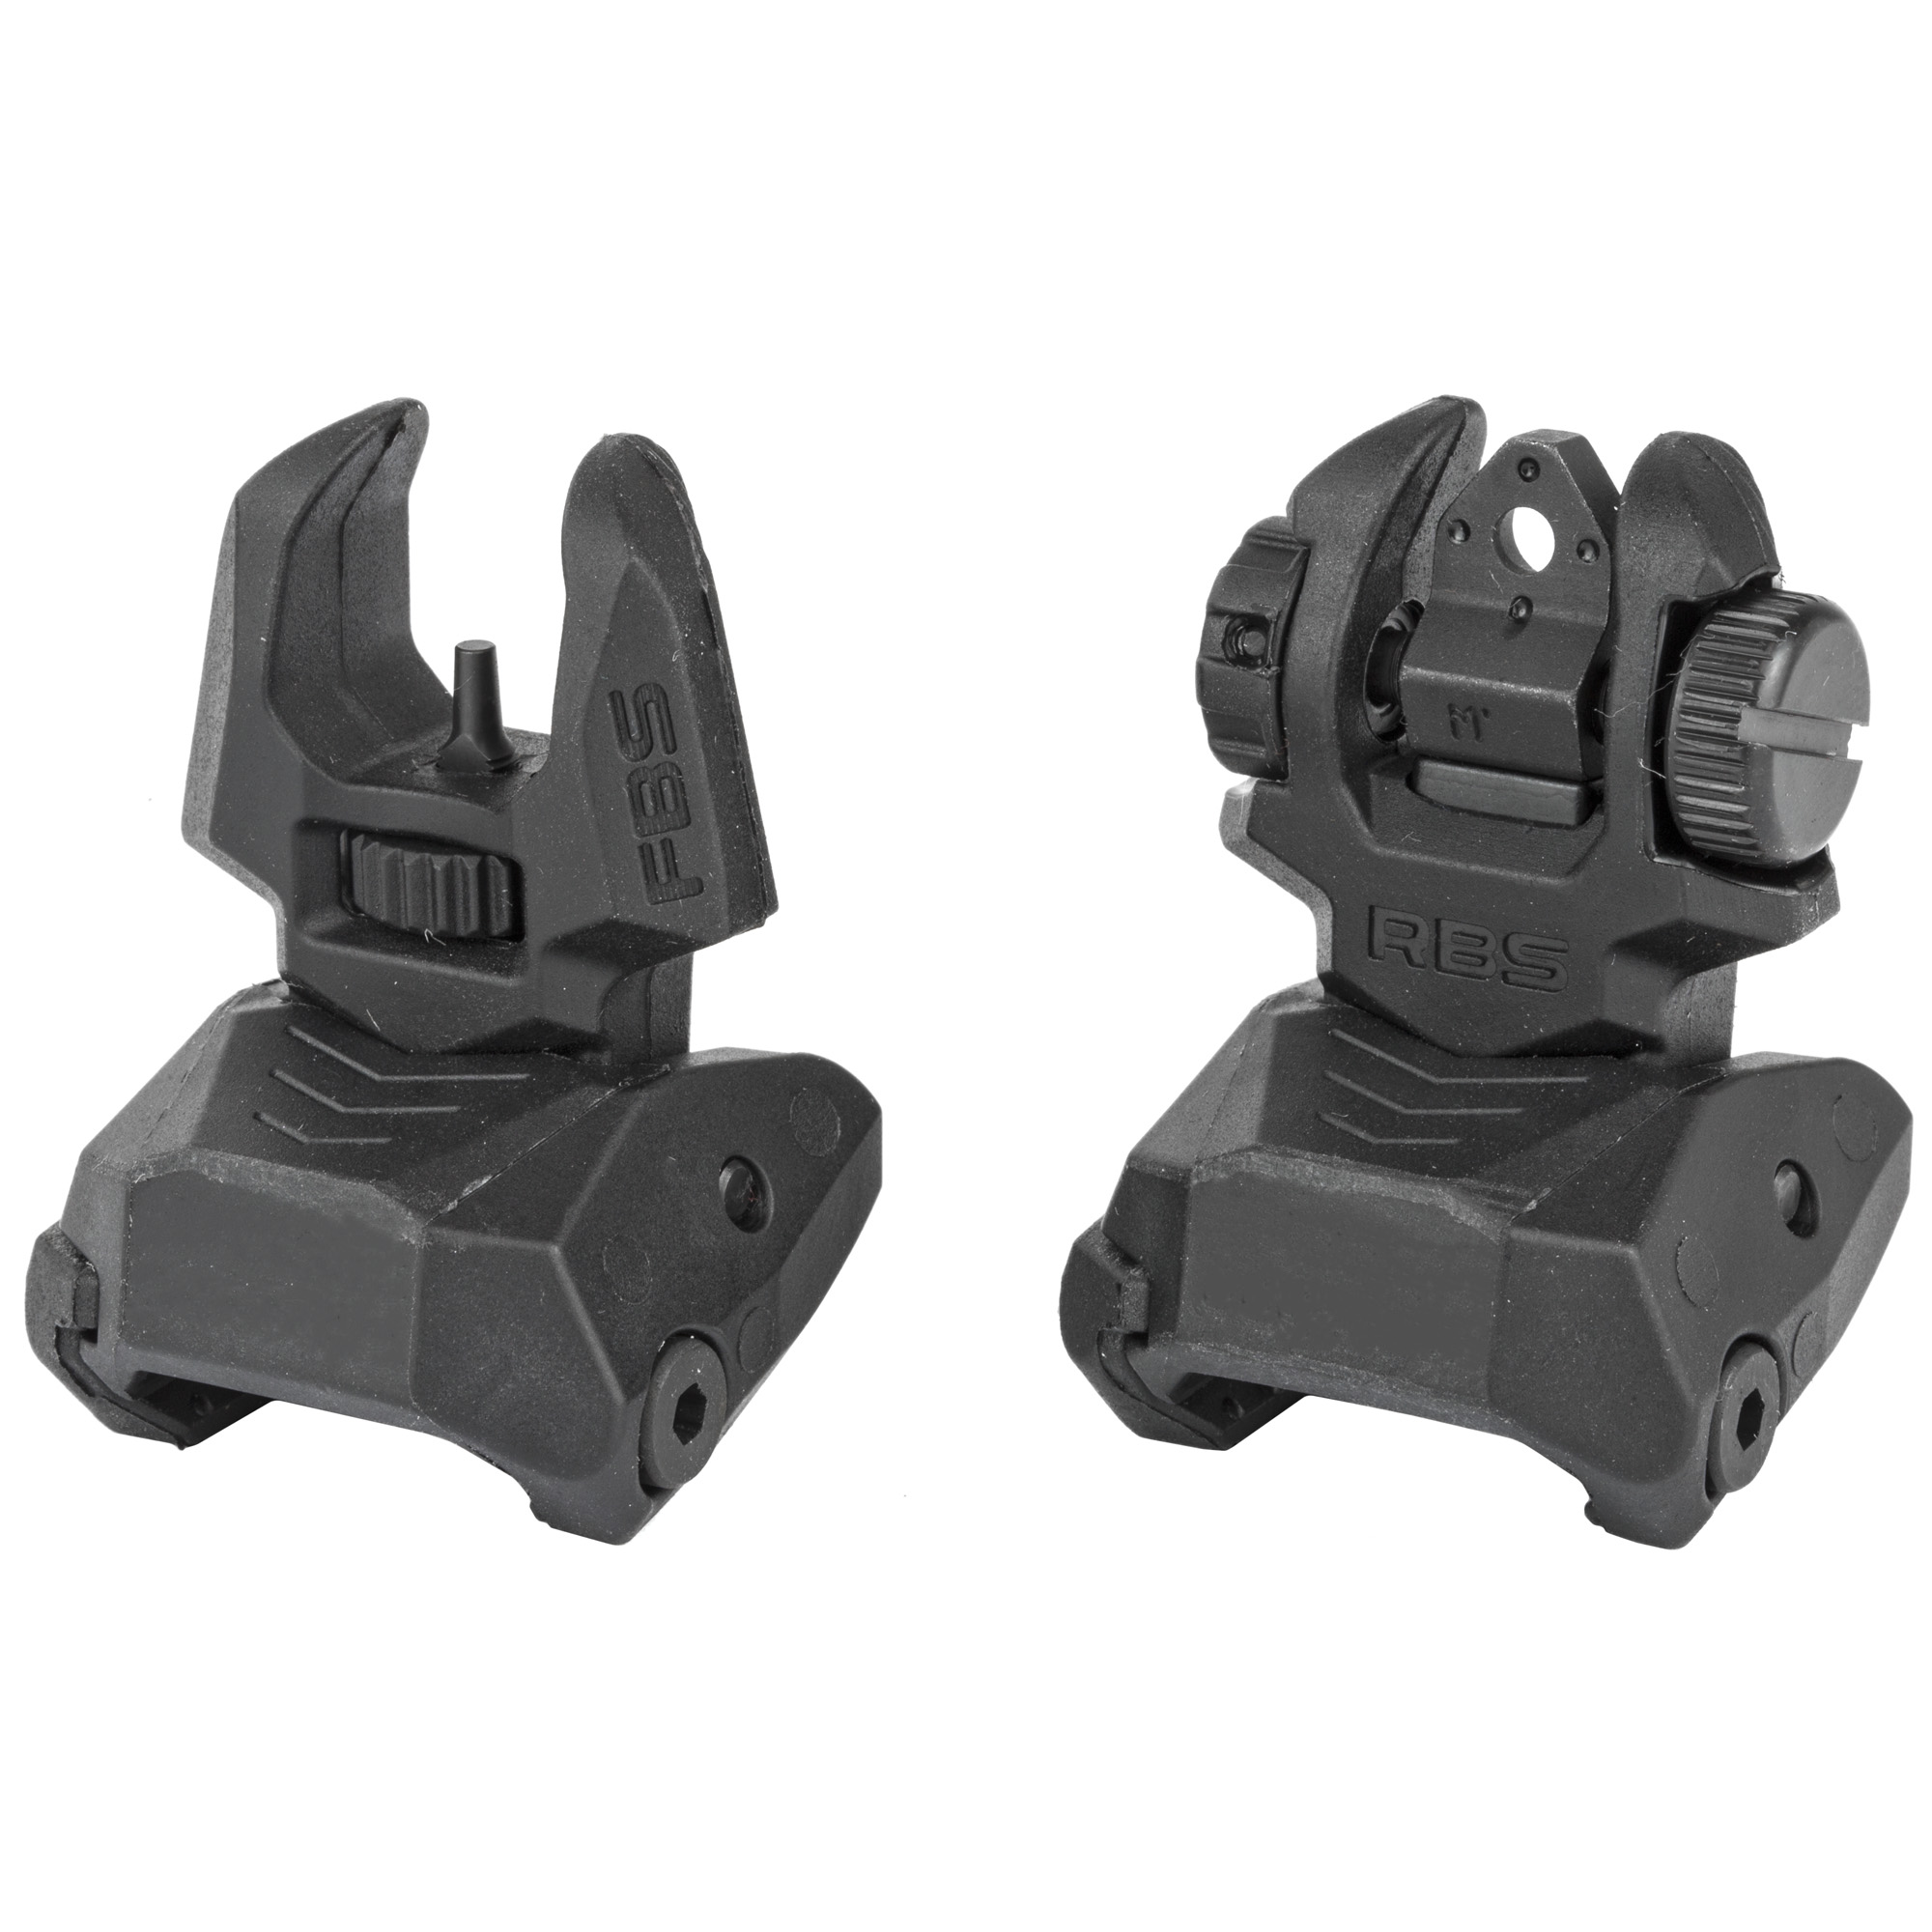 Meprolight FRBS Flip-Up Night Sight Set AR-15 4-Dot Rear Tritium Green Polymer Black